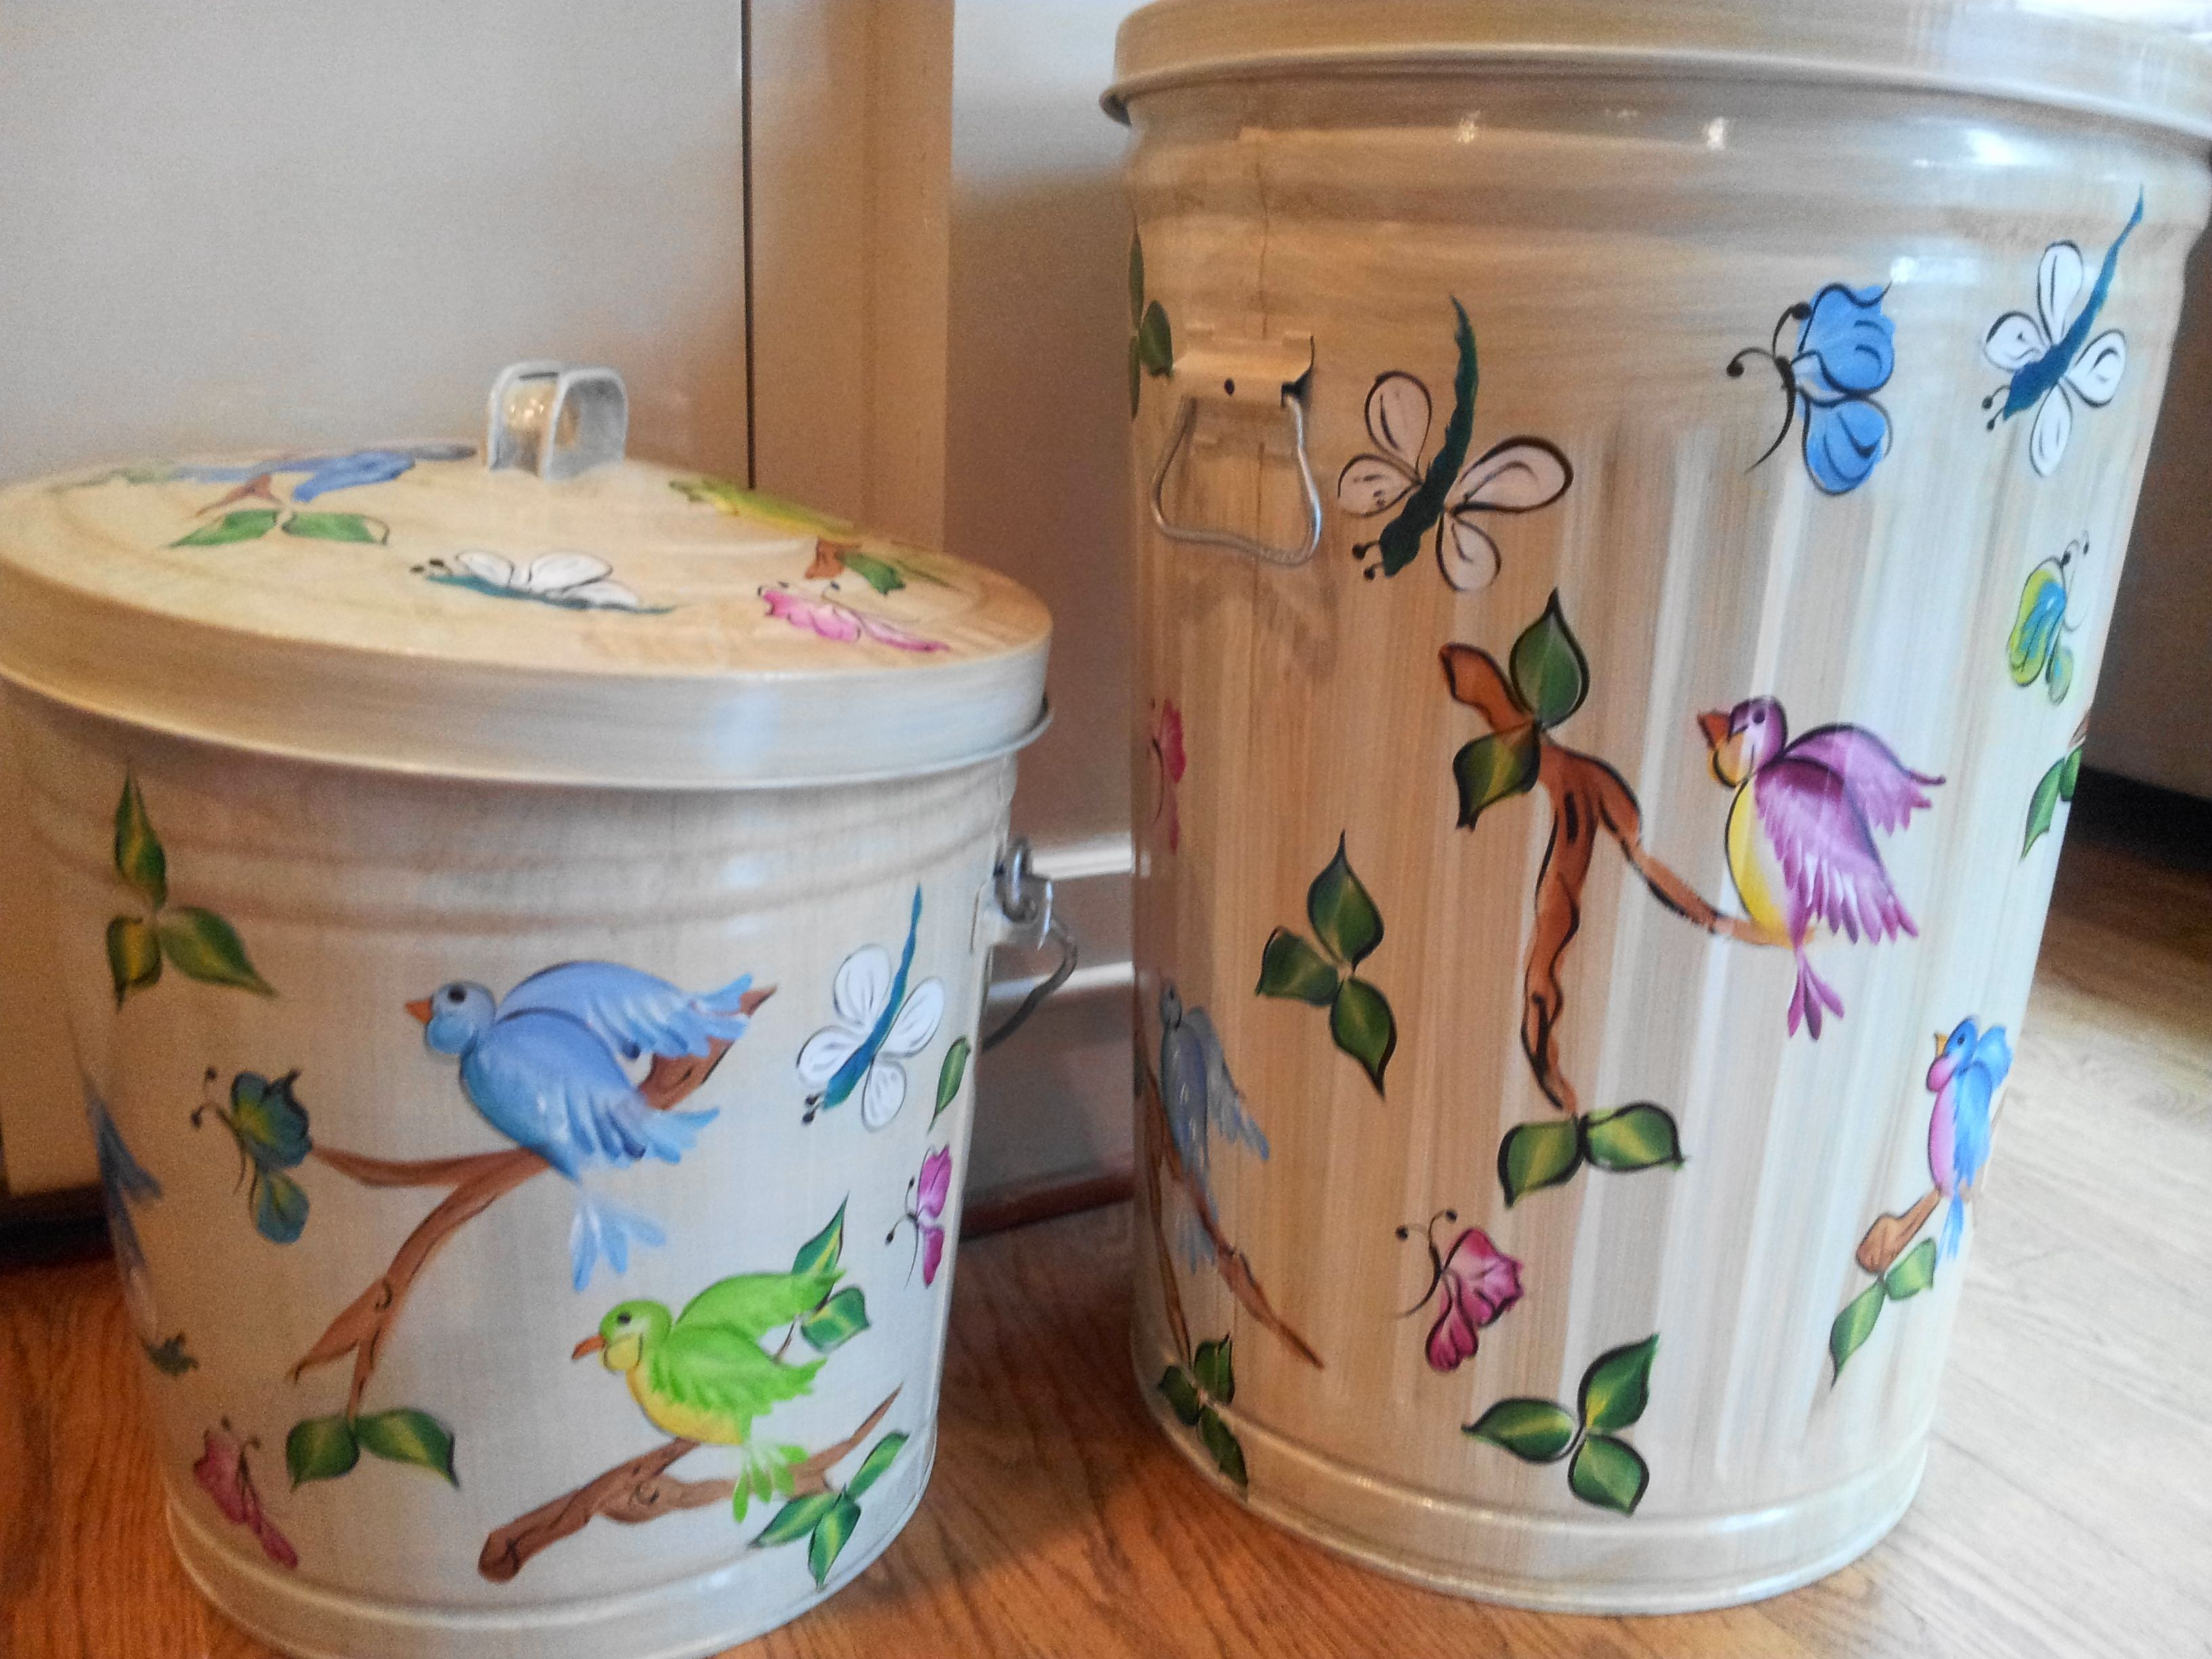 20 Gallon & 10 Gallon Hand Painted Cans  krystasinthepointe - ETSY